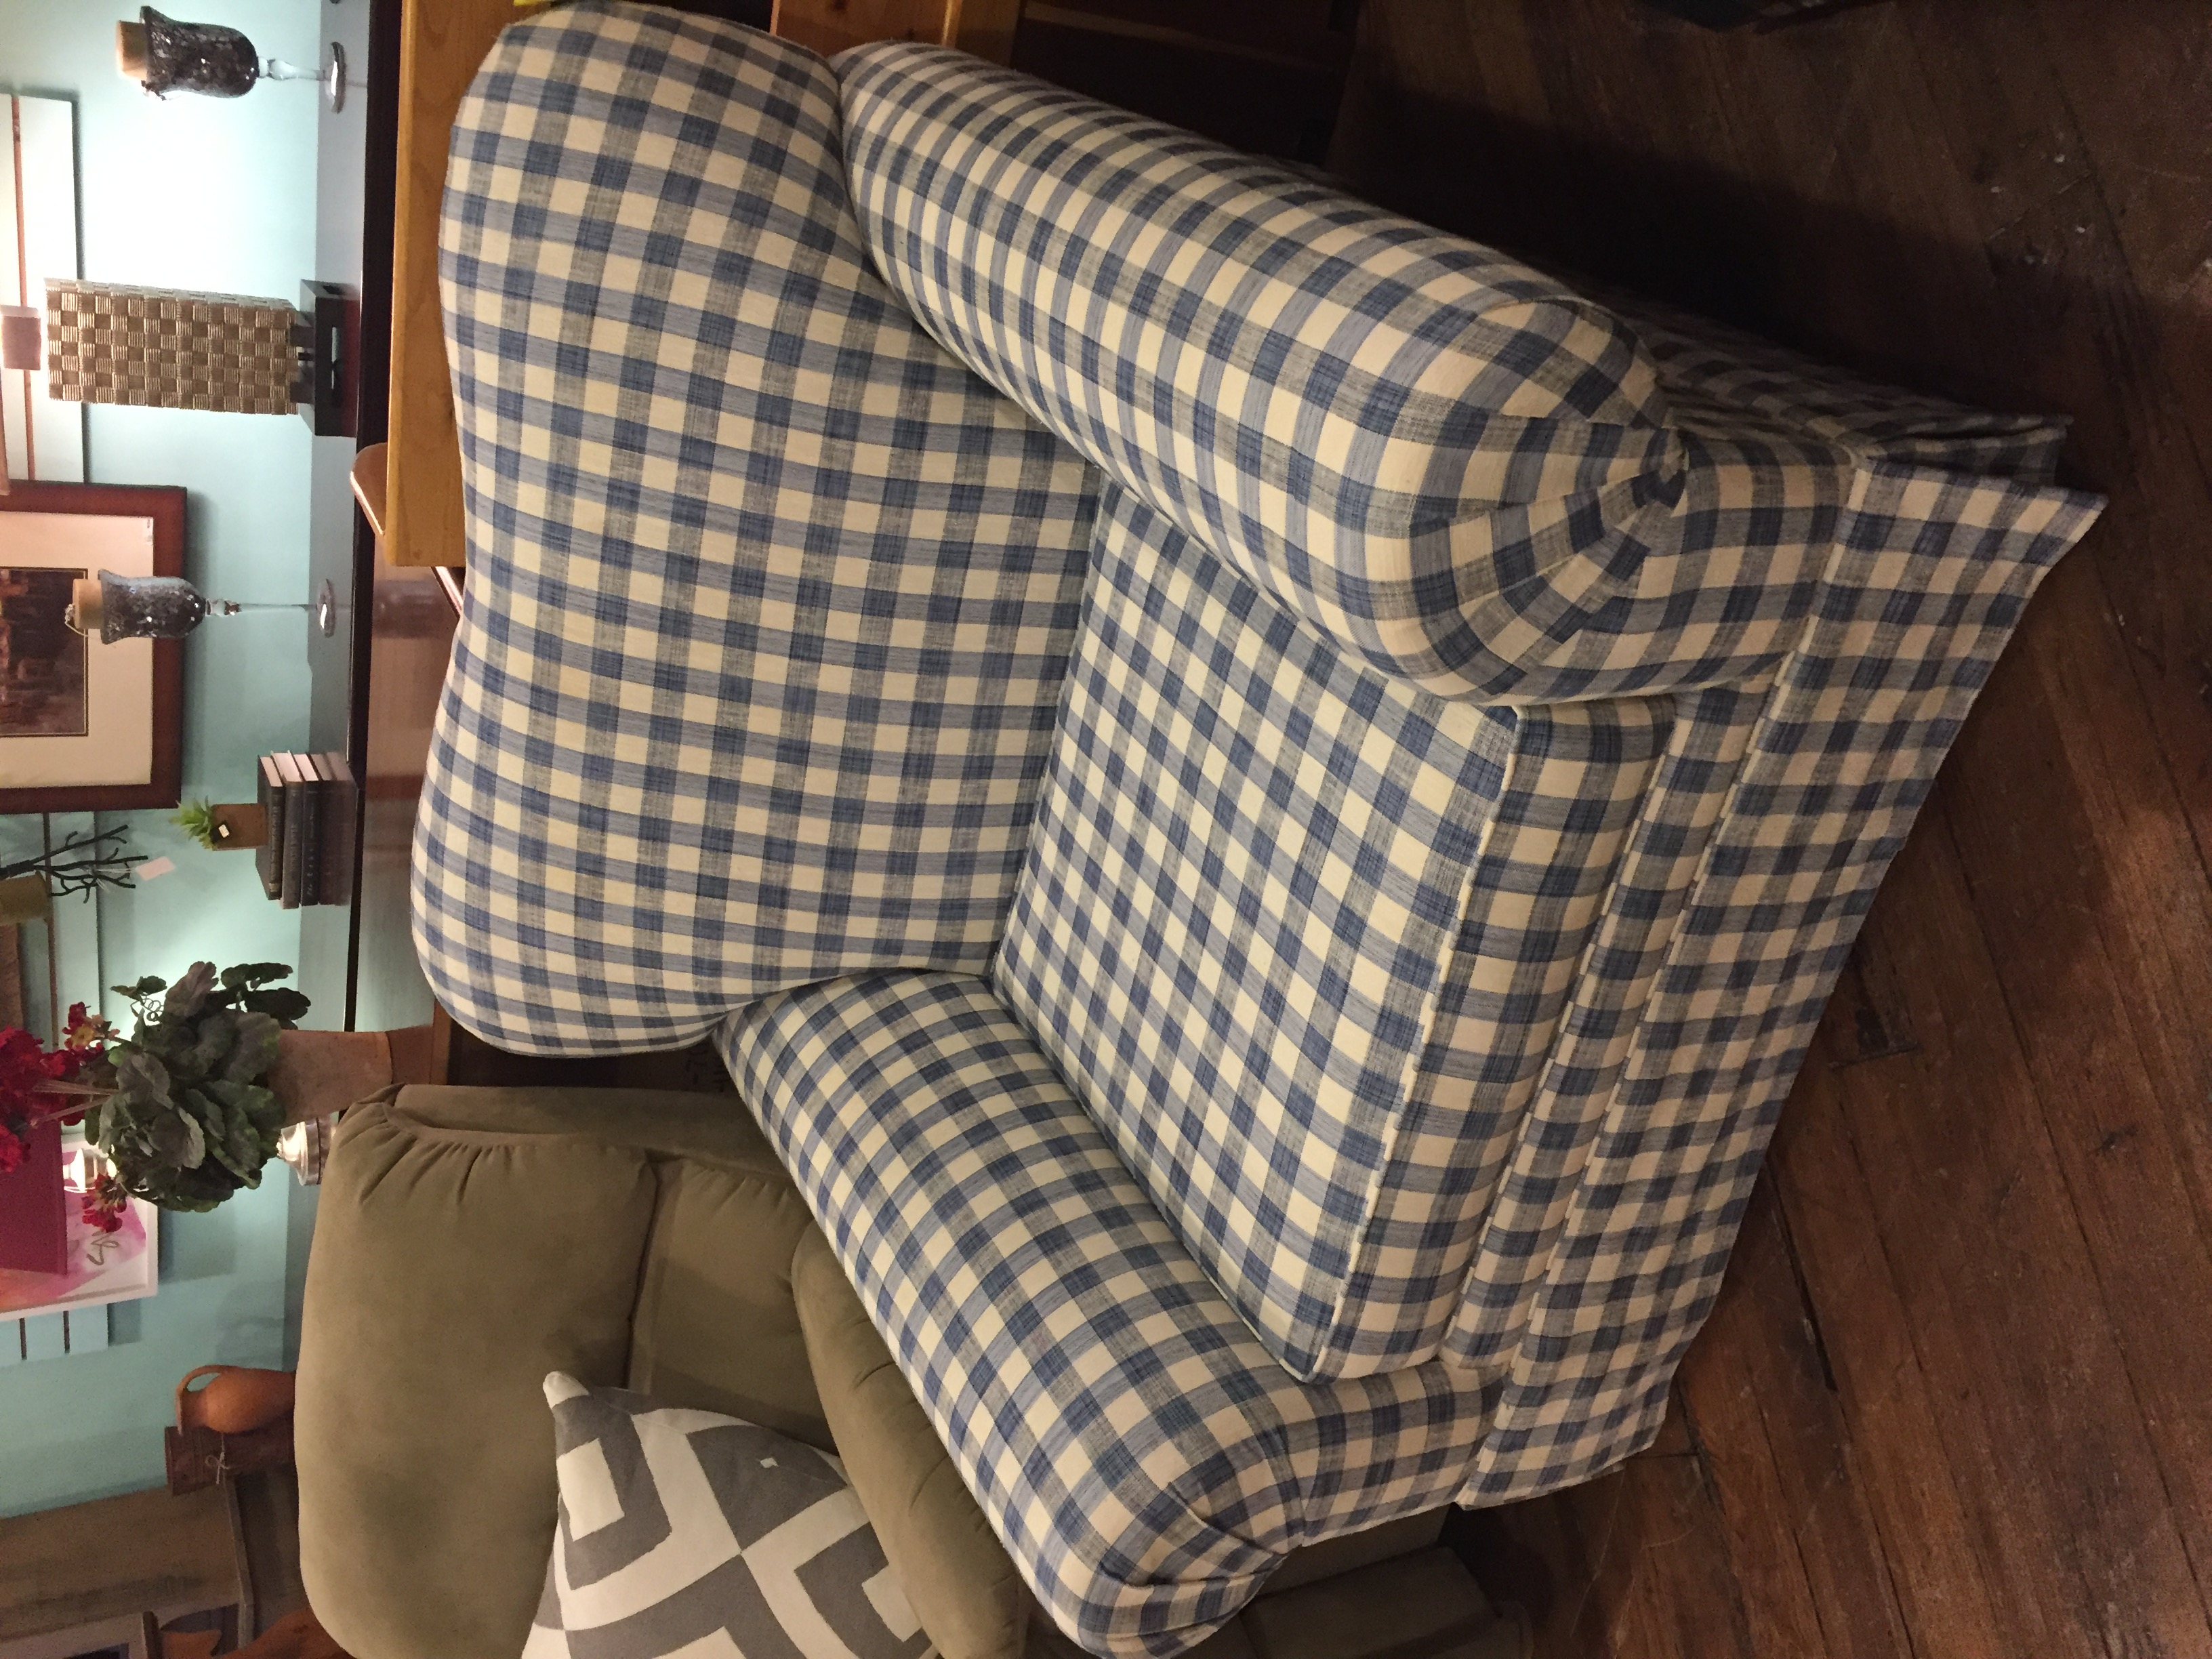 BLUE PLAId OVERSIZED CHAIR